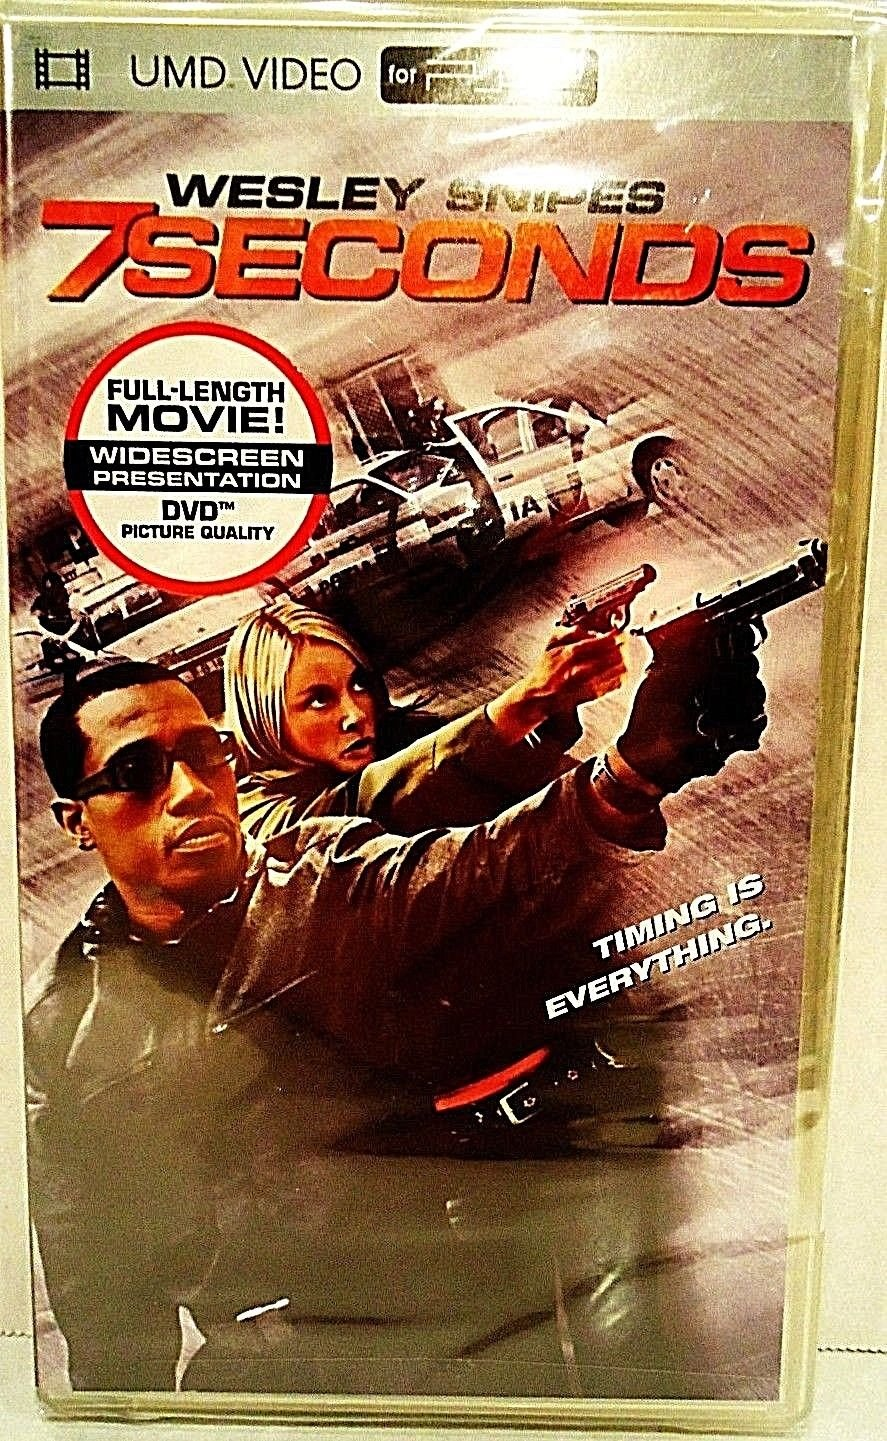 7 SECONDS - UMD - SONY - PSP - DVD - WESLEY SNIPES - WIDESCREEN - NEW - MOVIE